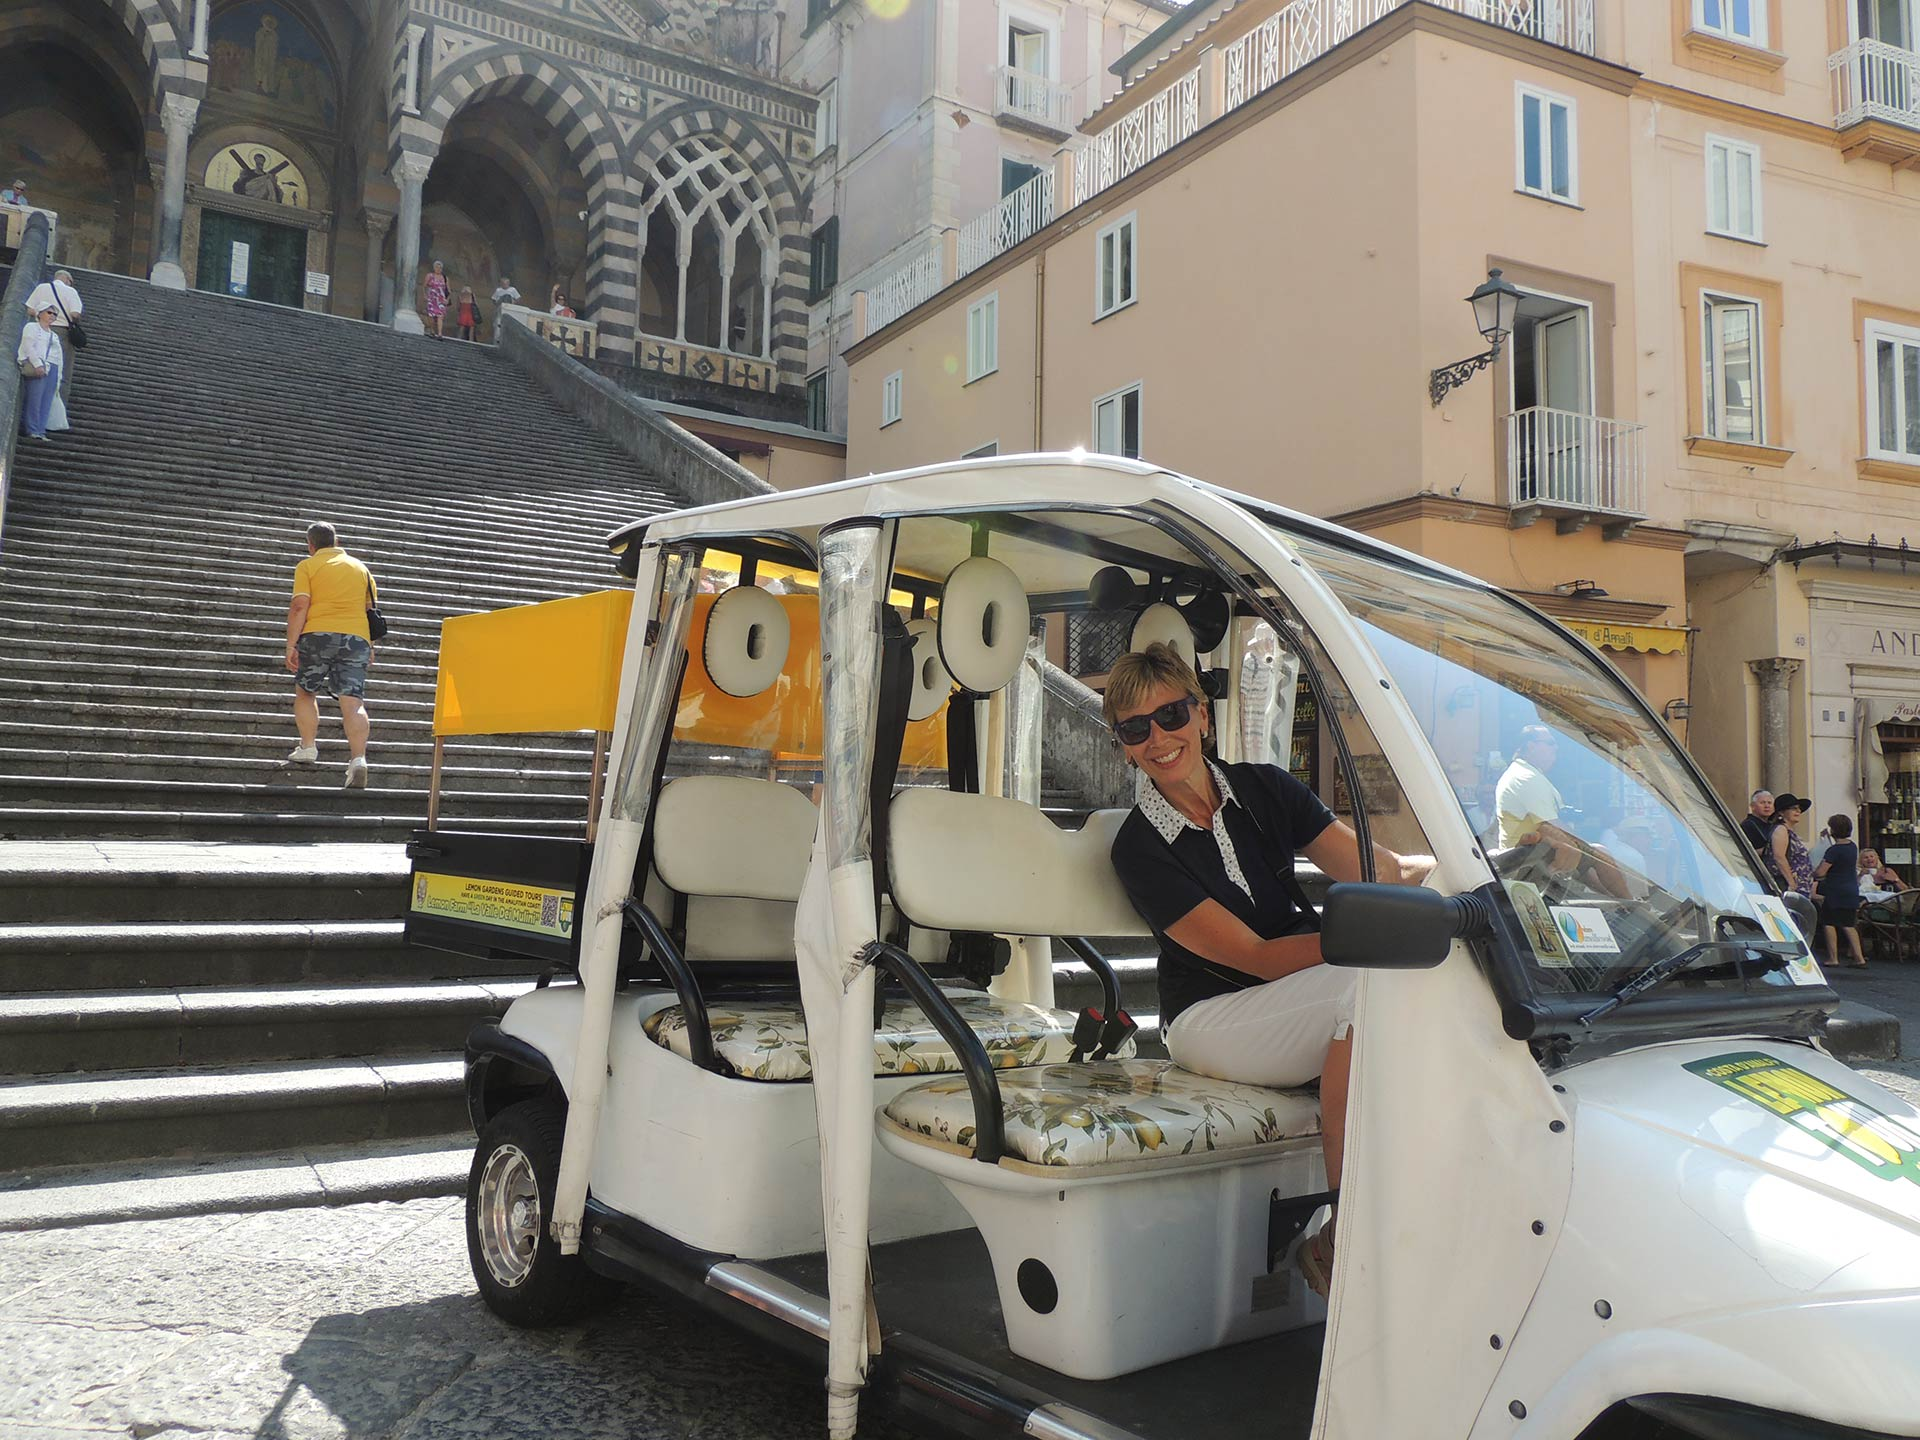 Experience the famous lemon tour of the Amalfi Coast